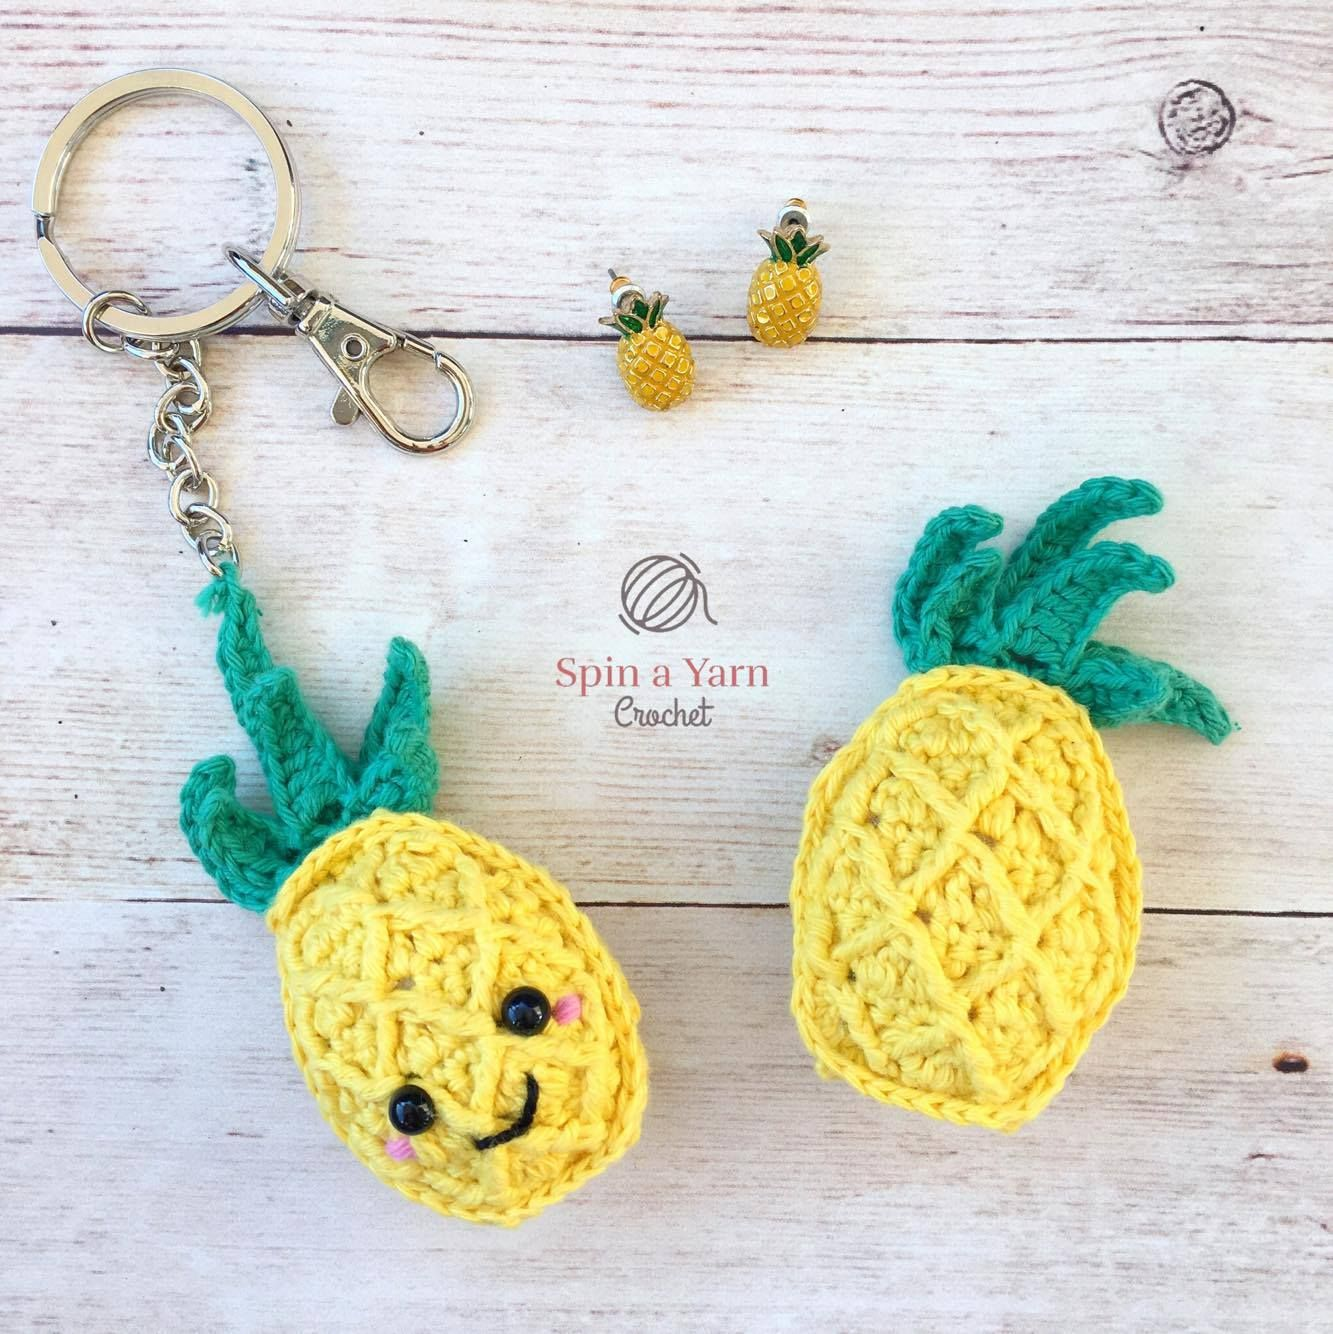 Pineapple Keychain - Free Crochet Pattern at Spin A Yarn Crochet ...